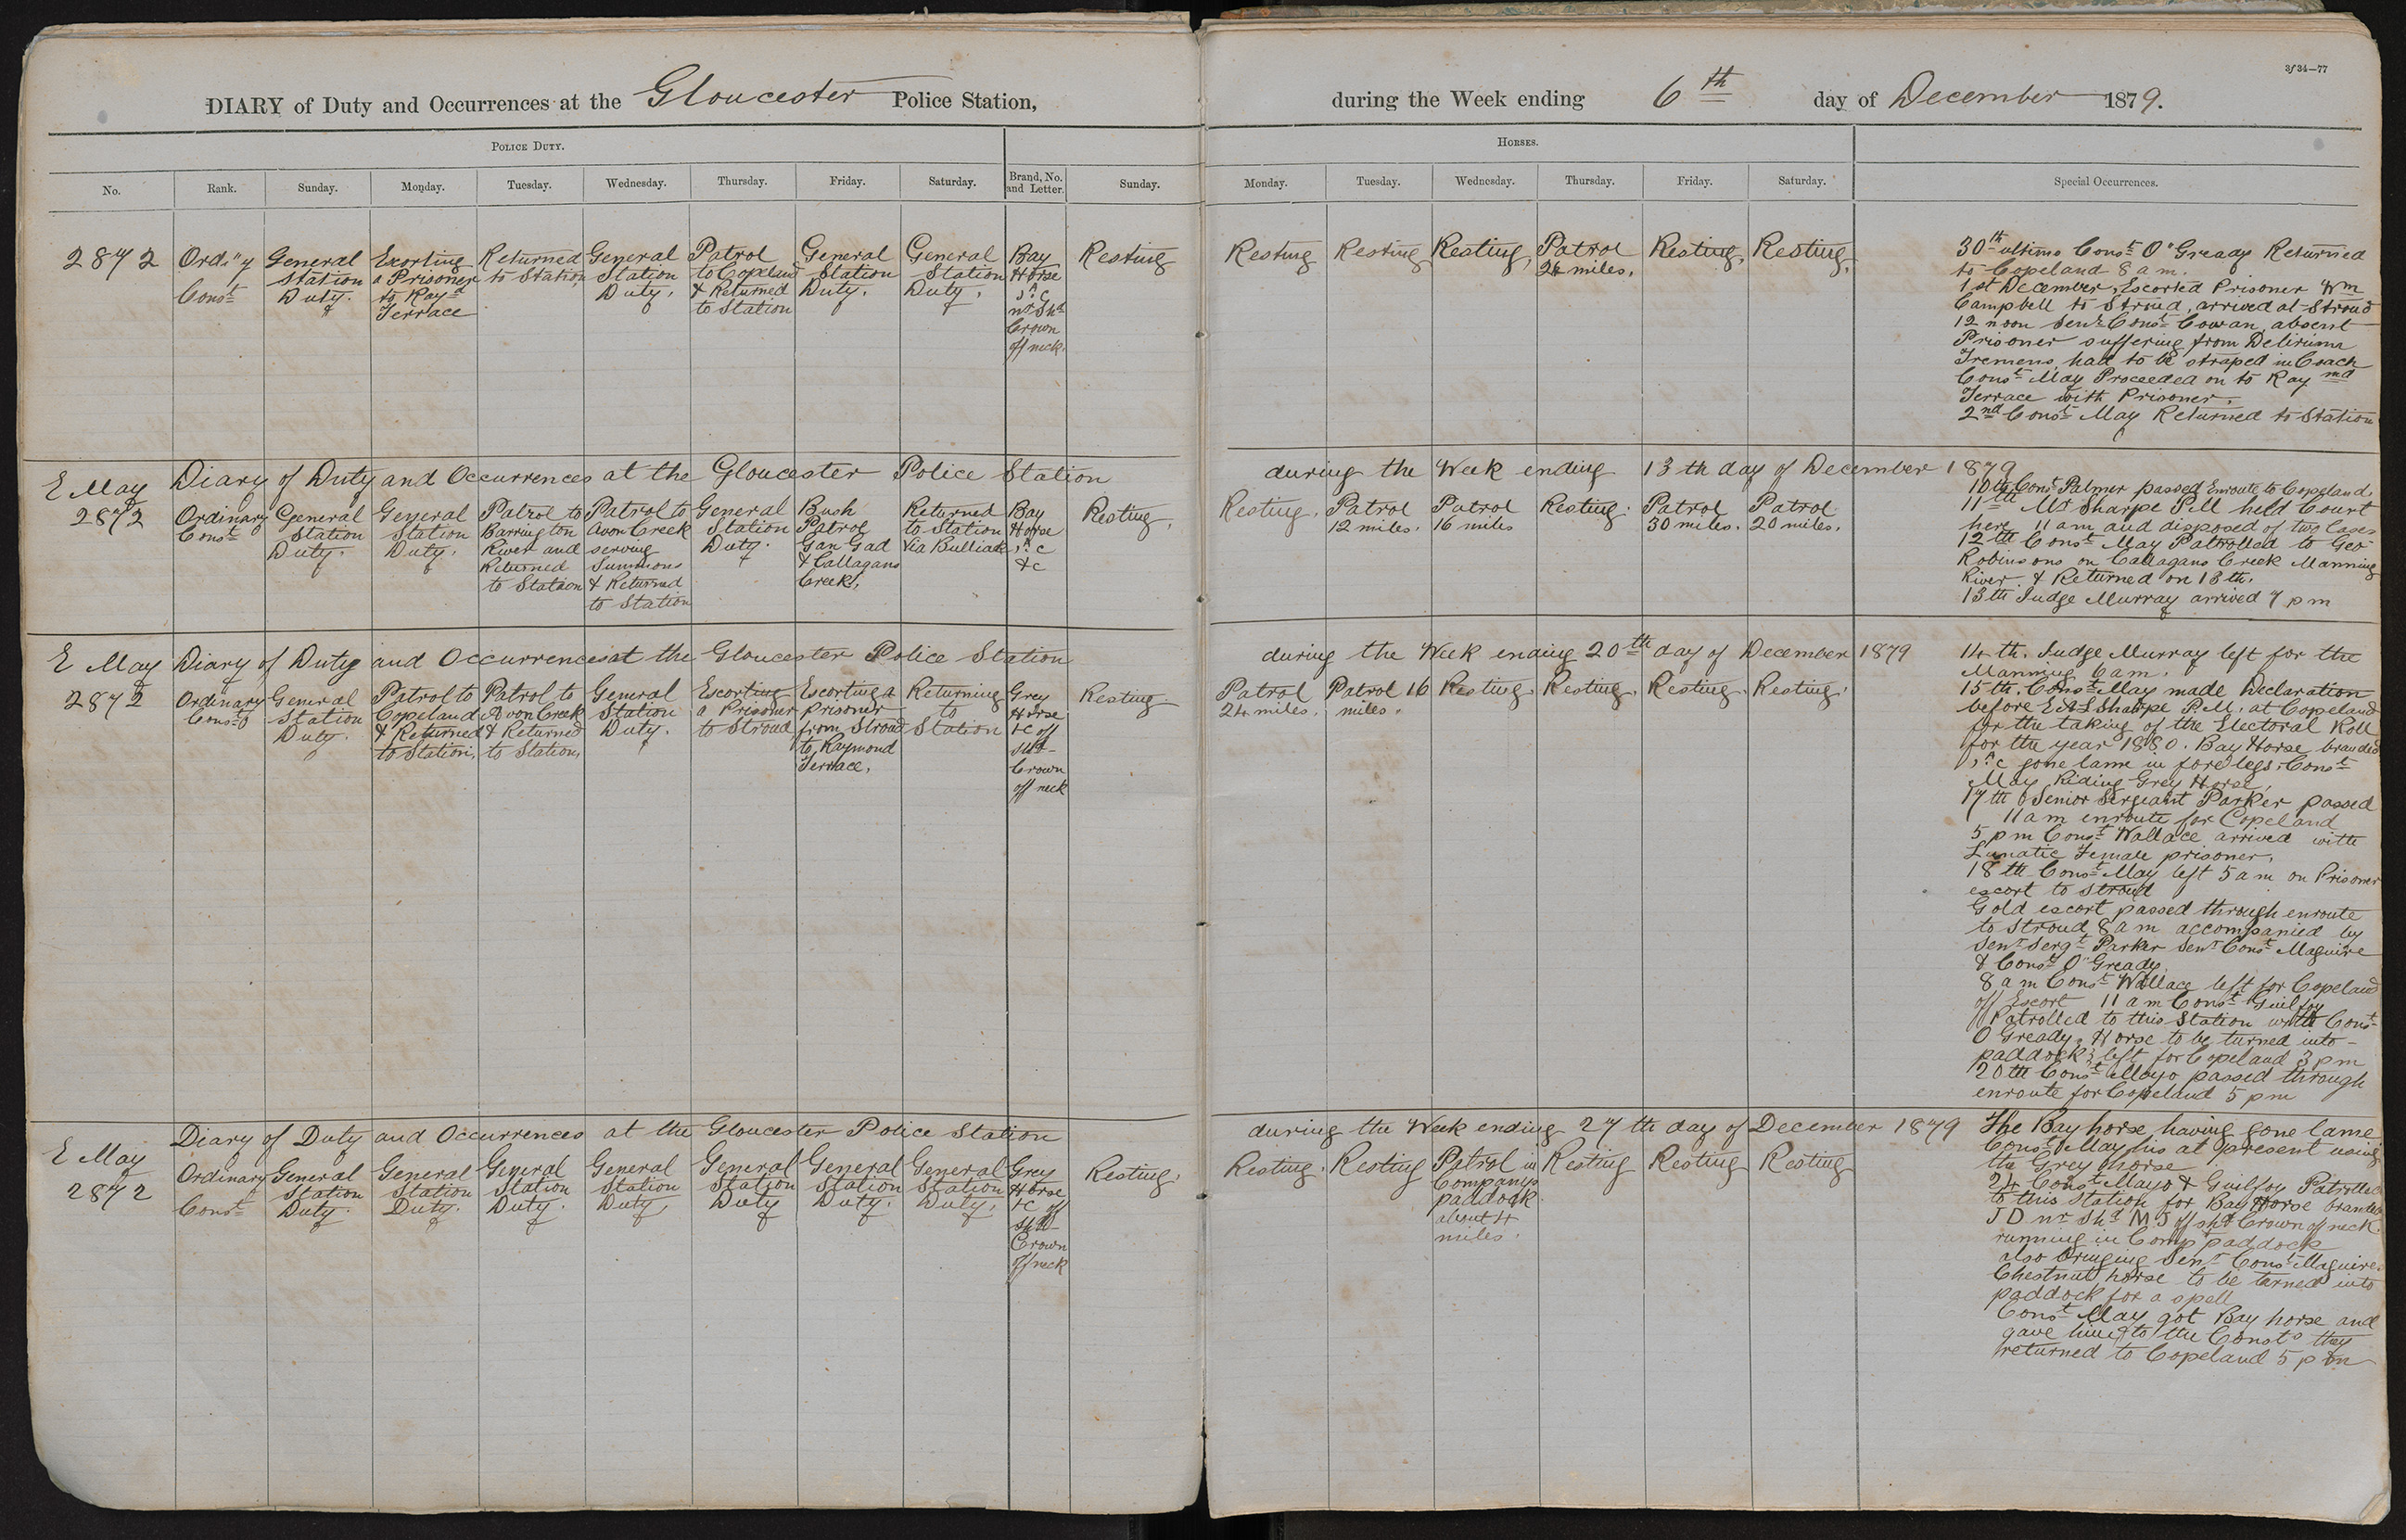 Diary of duty and occurrences at the Gloucester Police Station during the week ending the 6th day of December 1879